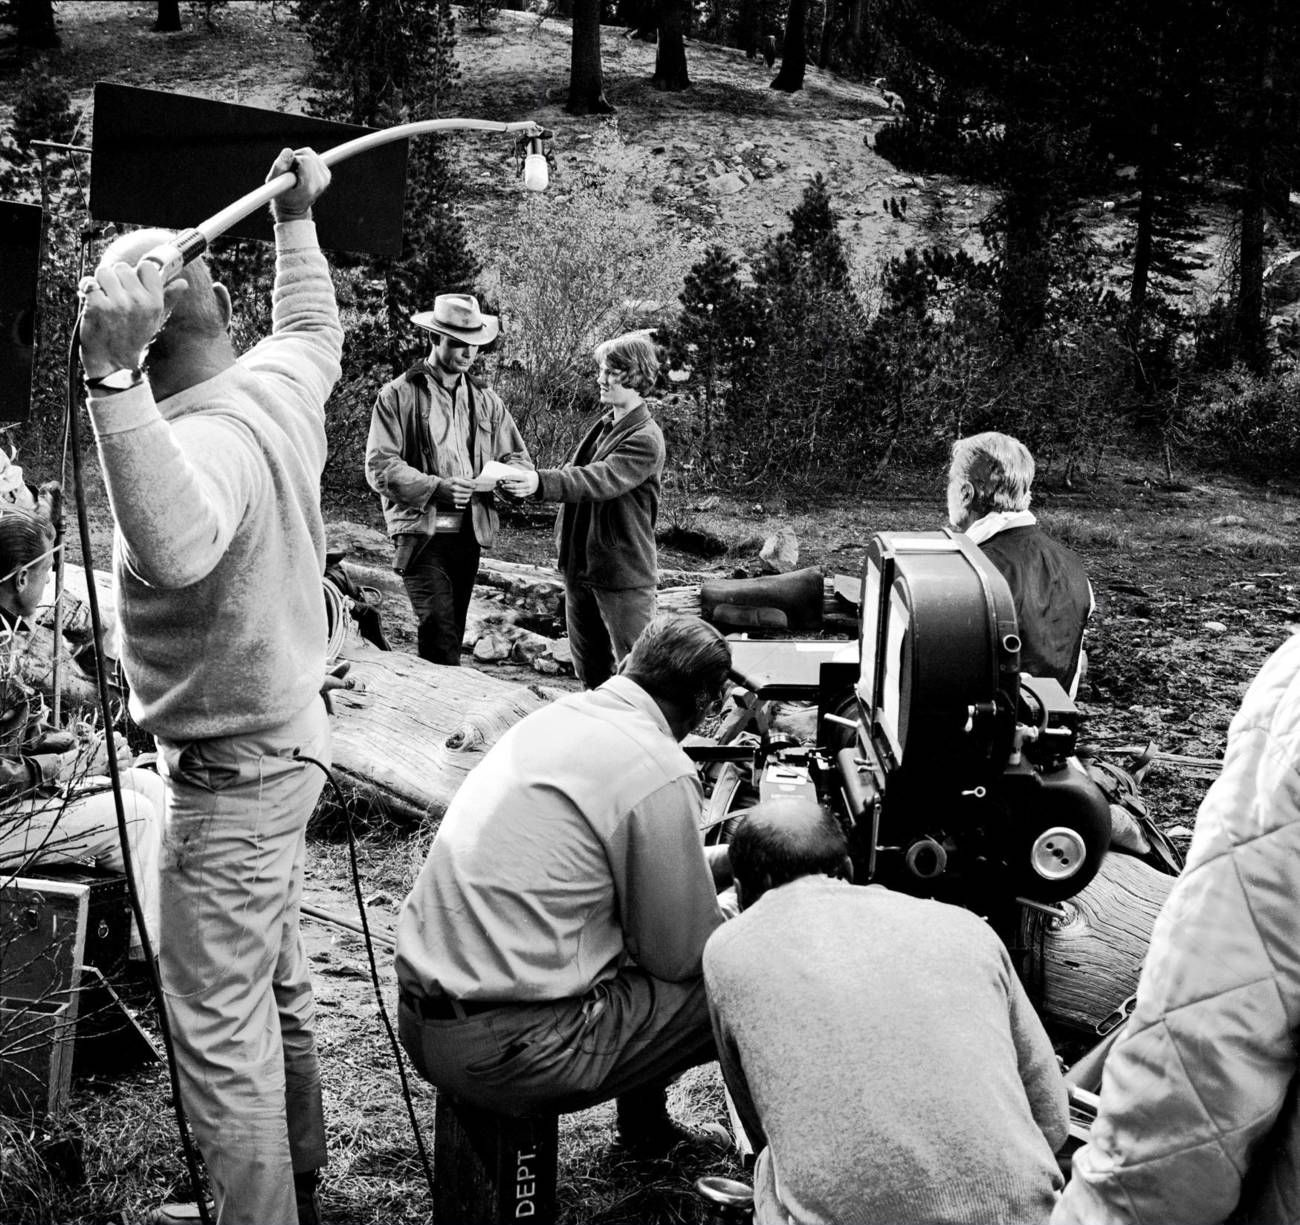 Ride the High Country': The Seed from which Peckinpah's